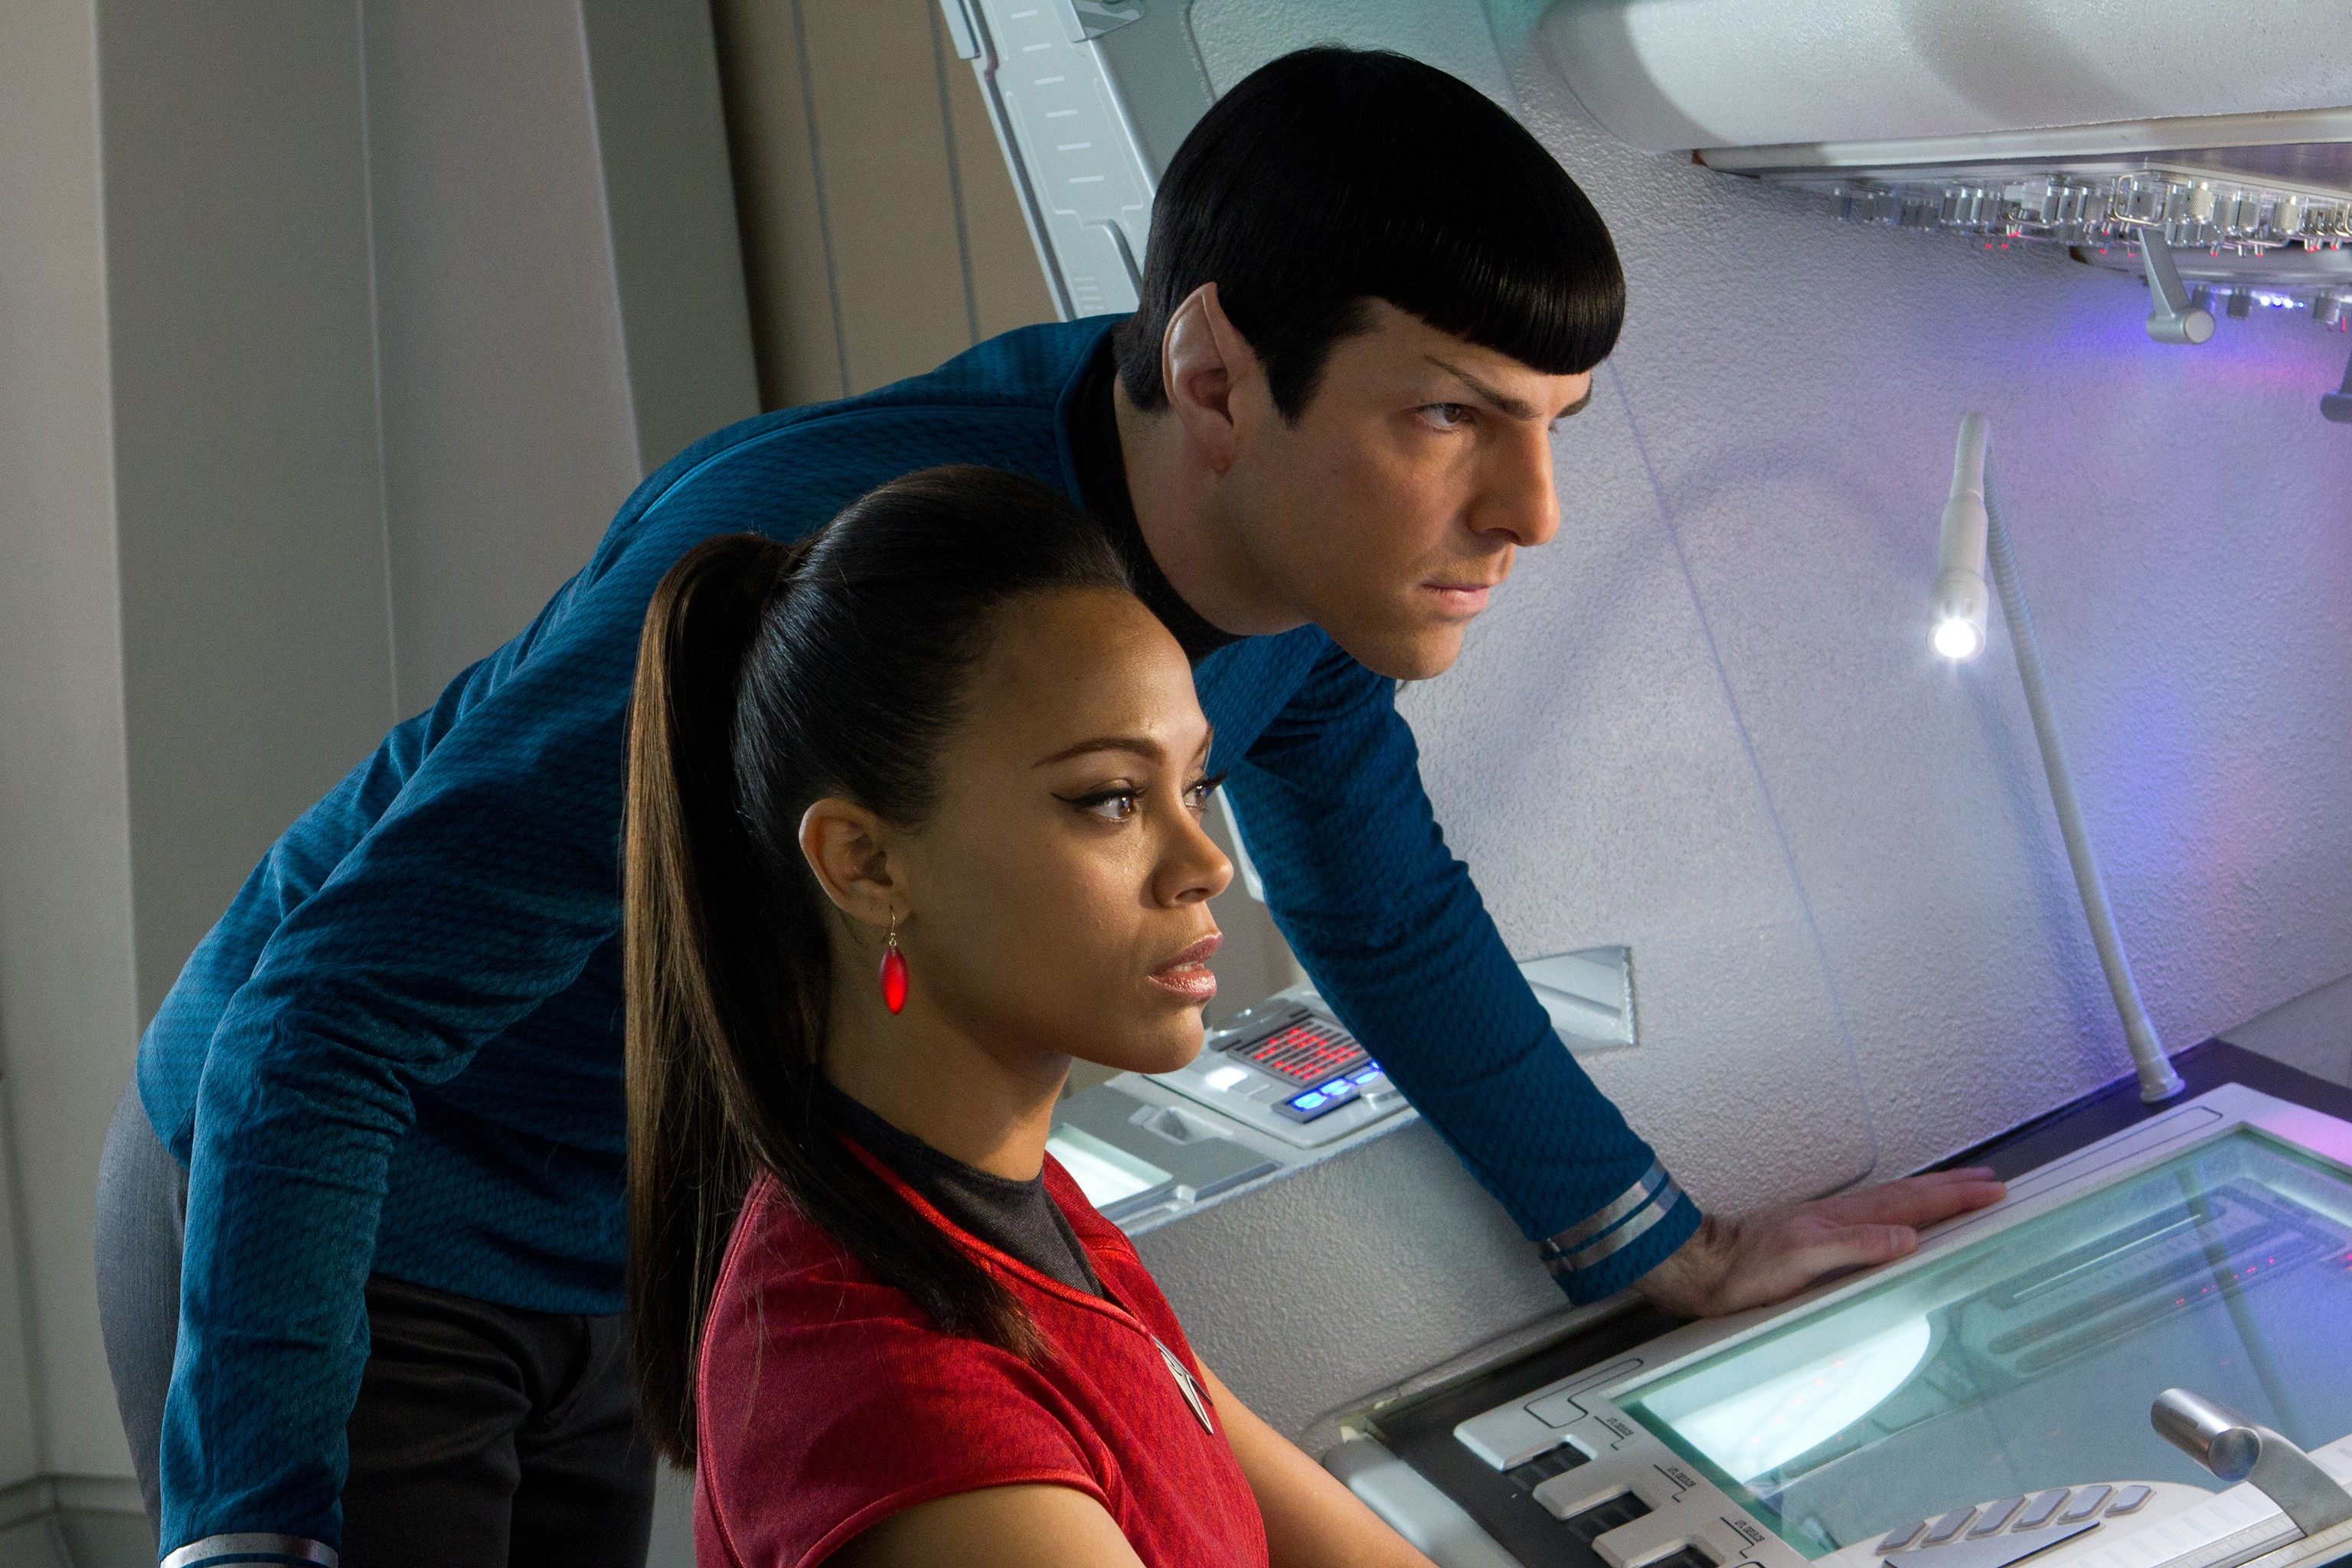 Spock leaning over Uhura's shoulder at her desk